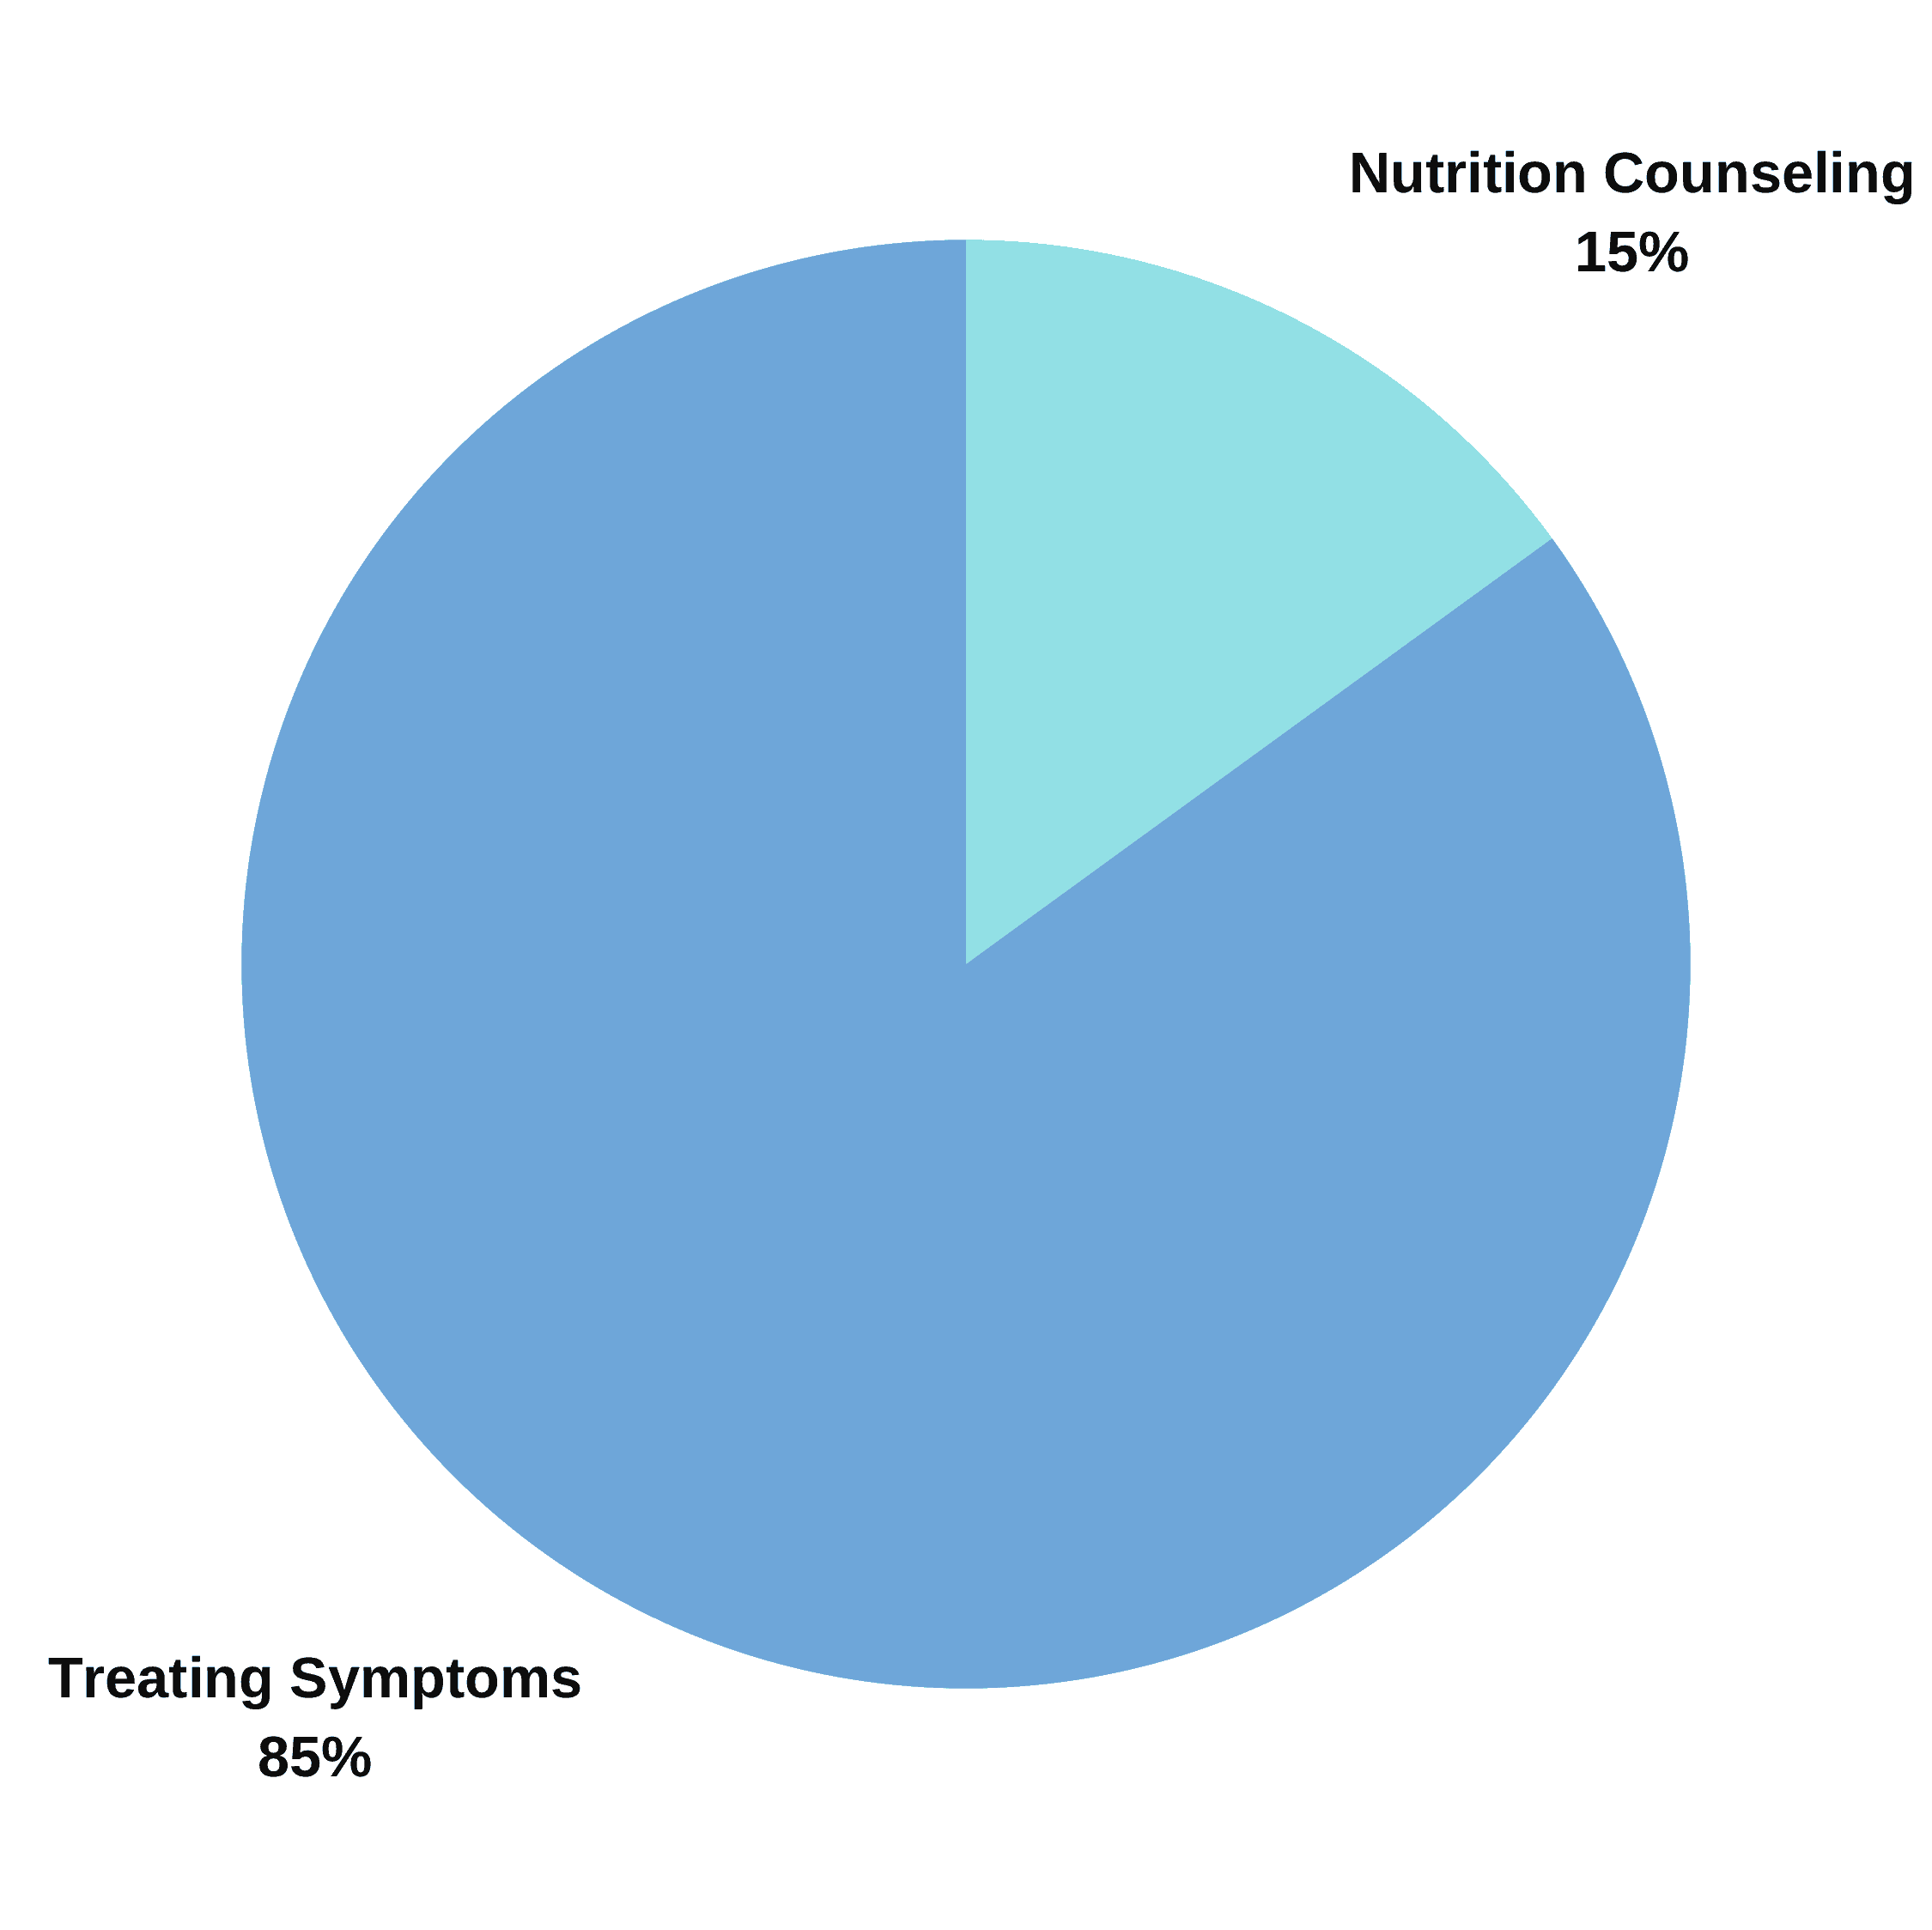 Percent Of Nutritional Counseling